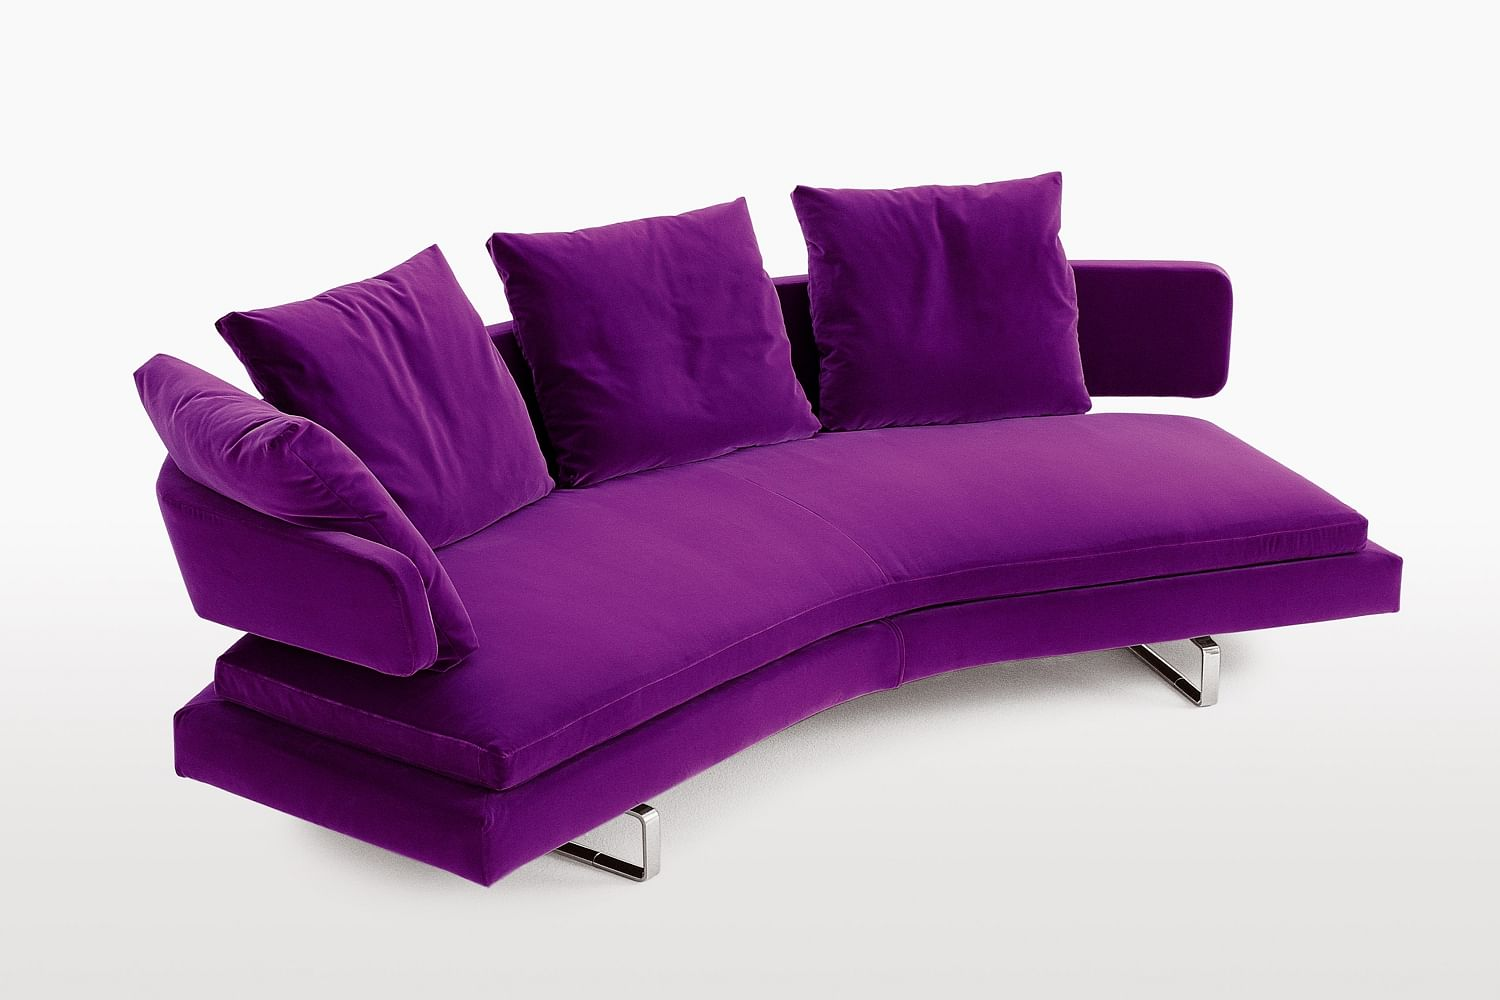 colourful living room furniture that packs a punch! | home & decor